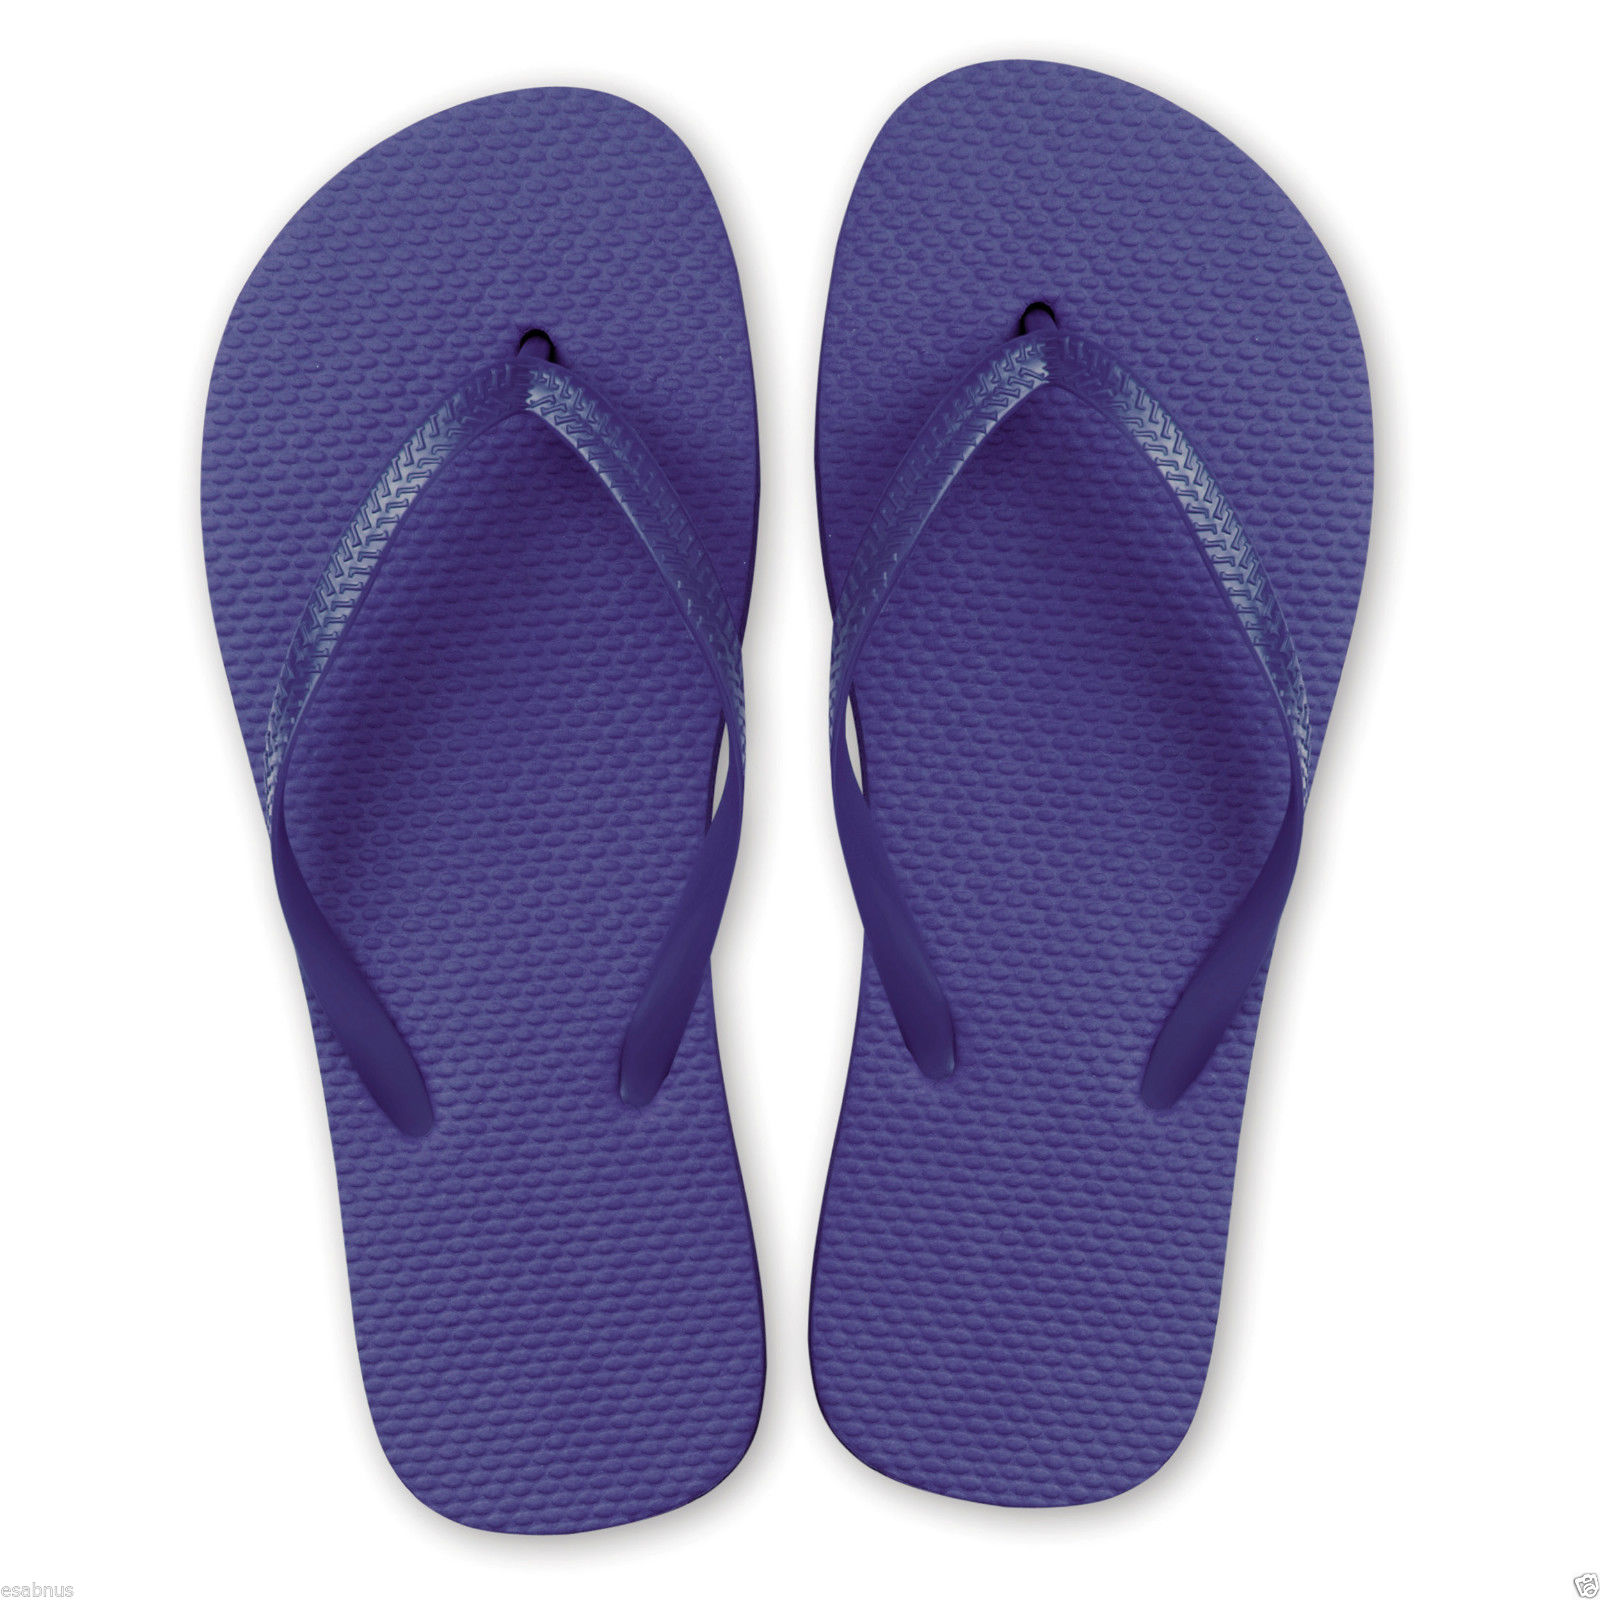 flip flops 10pr men women summer beach size m l 6 9 flipflops light sandals ebay. Black Bedroom Furniture Sets. Home Design Ideas